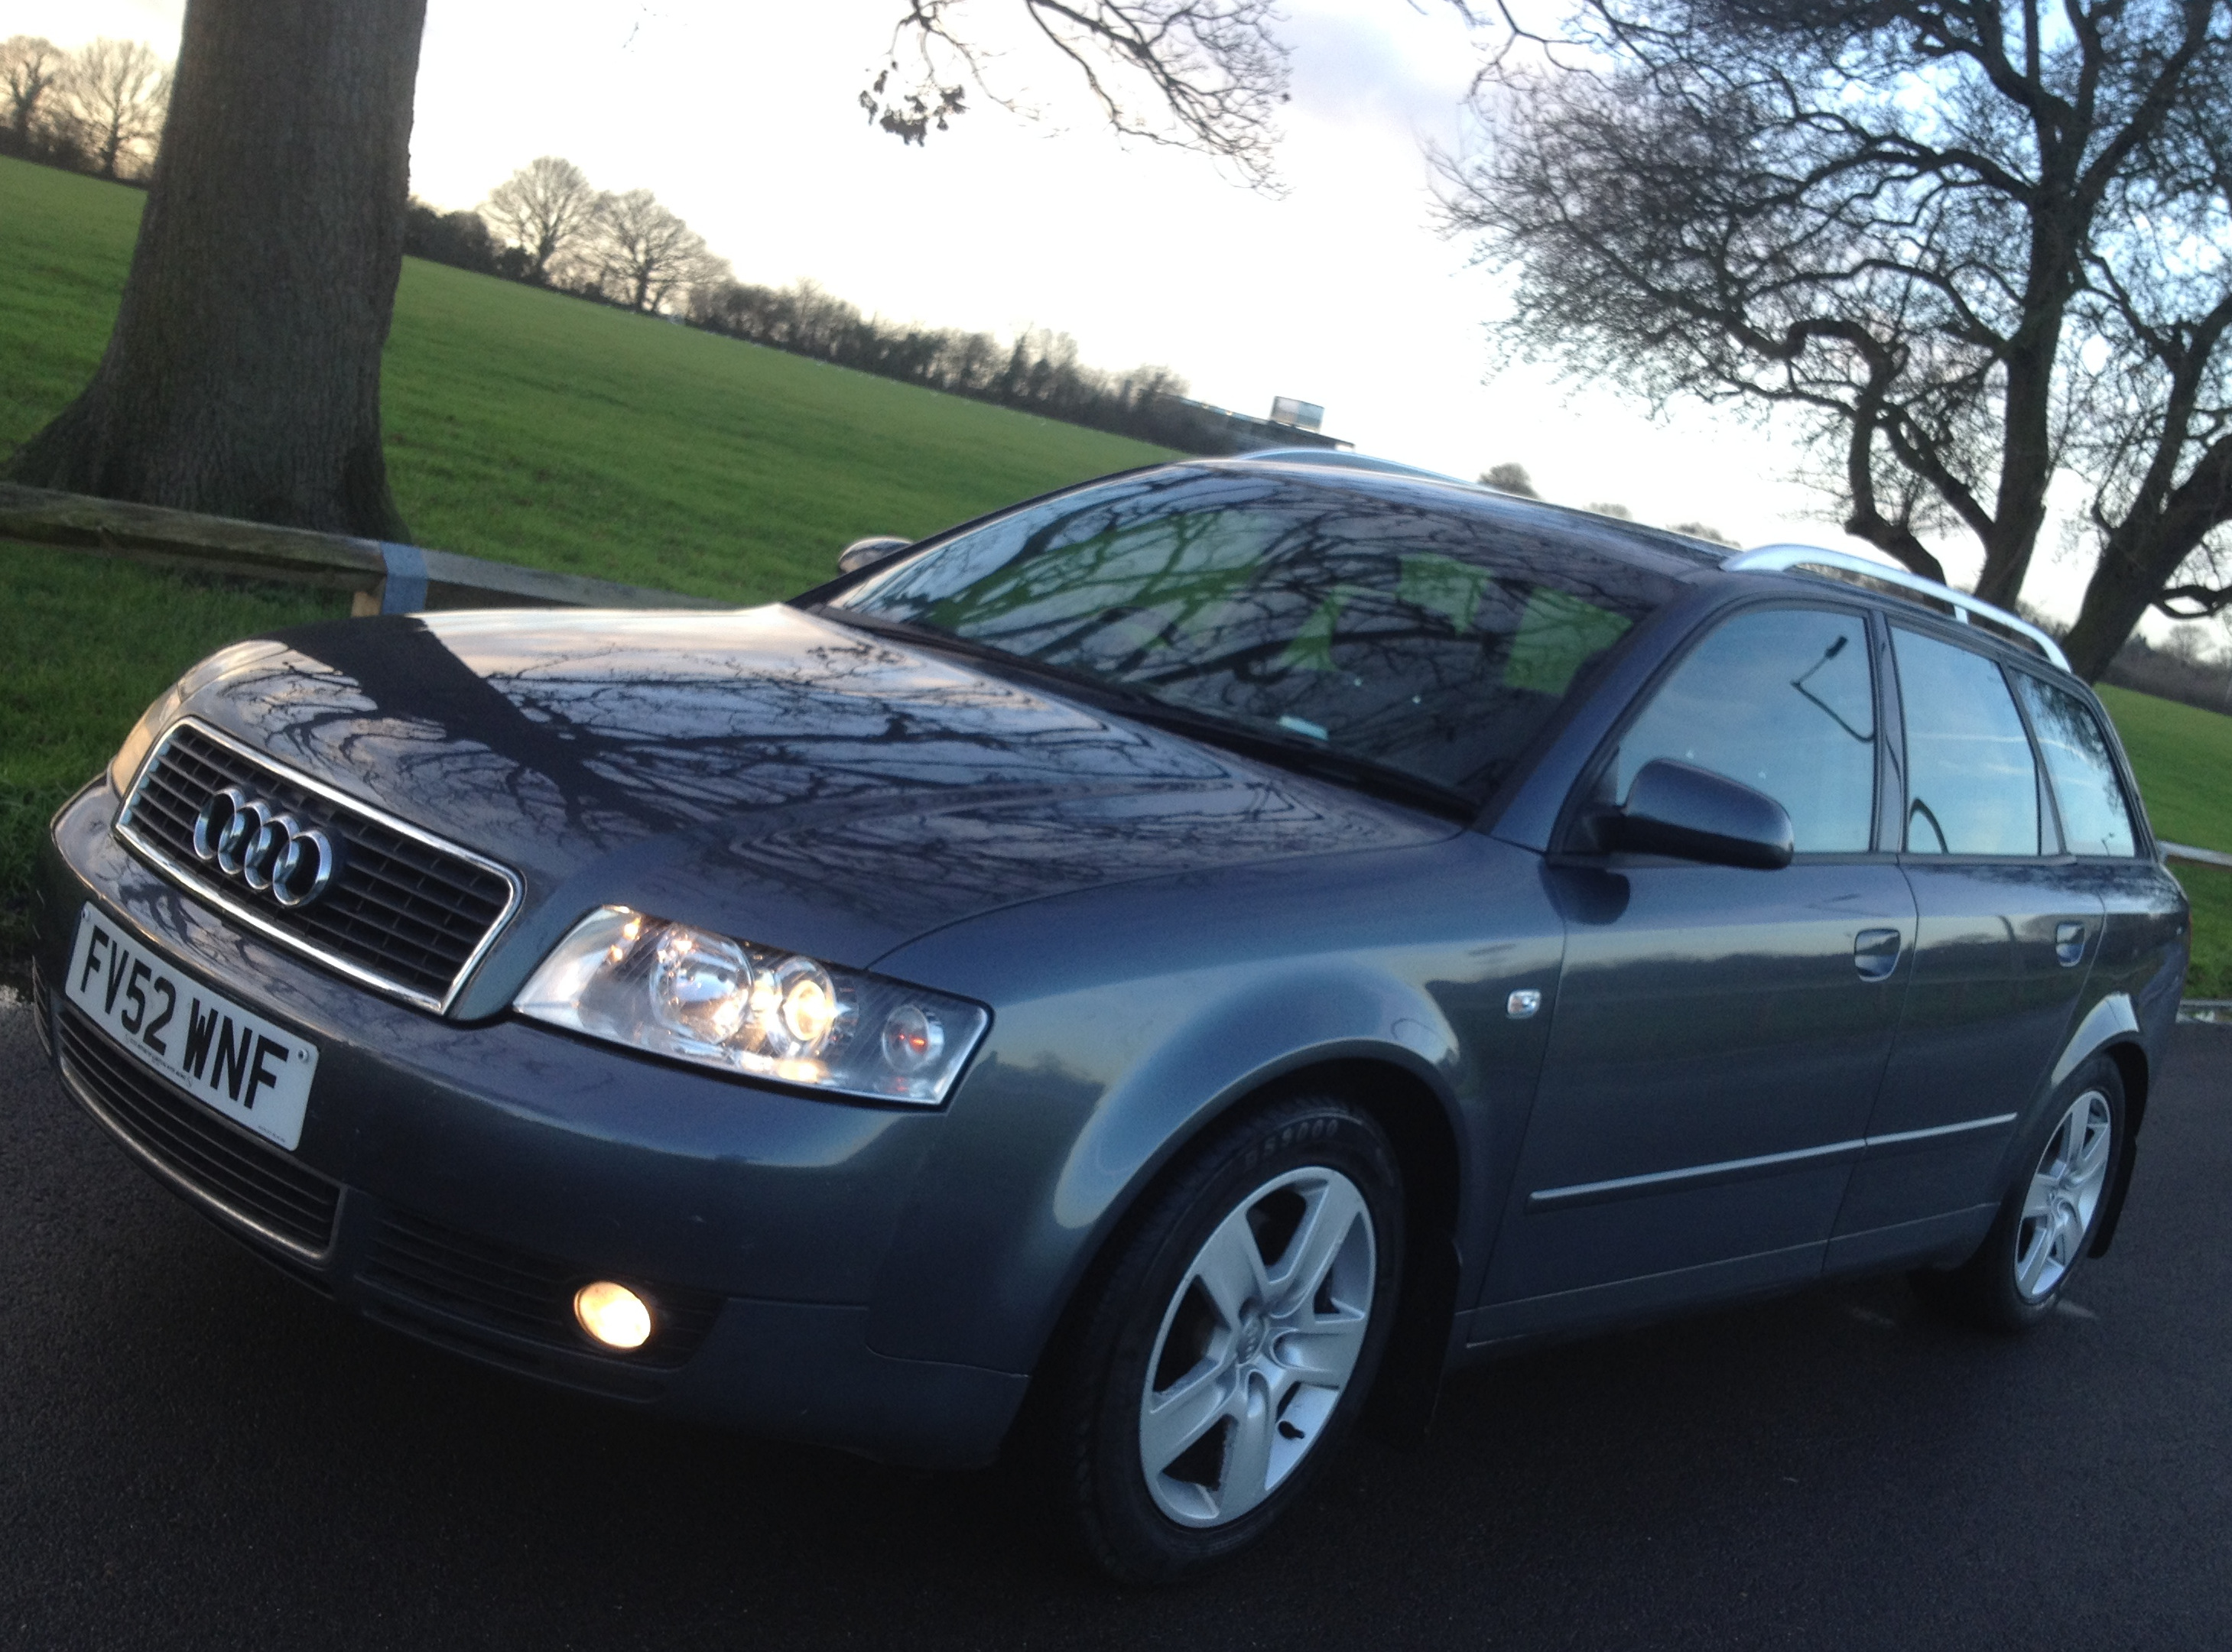 audi a4 1 9 tdi 130 bhp manual criscars. Black Bedroom Furniture Sets. Home Design Ideas